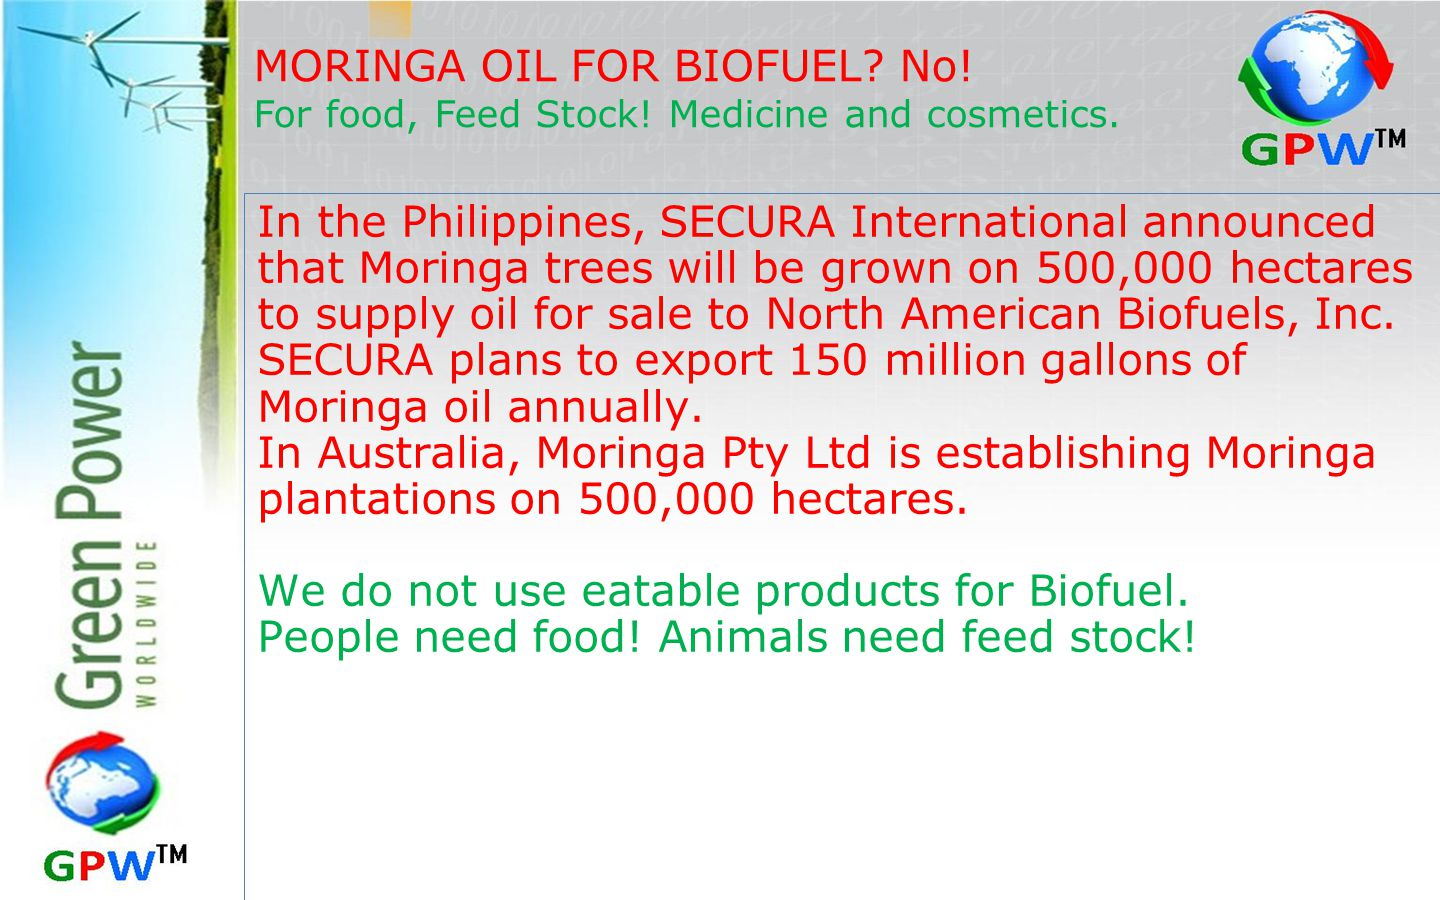 In the Philippines, SECURA International announced that Moringa trees will be grown on 500,000 hectares to supply oil for sale to North American Biofuels, Inc.